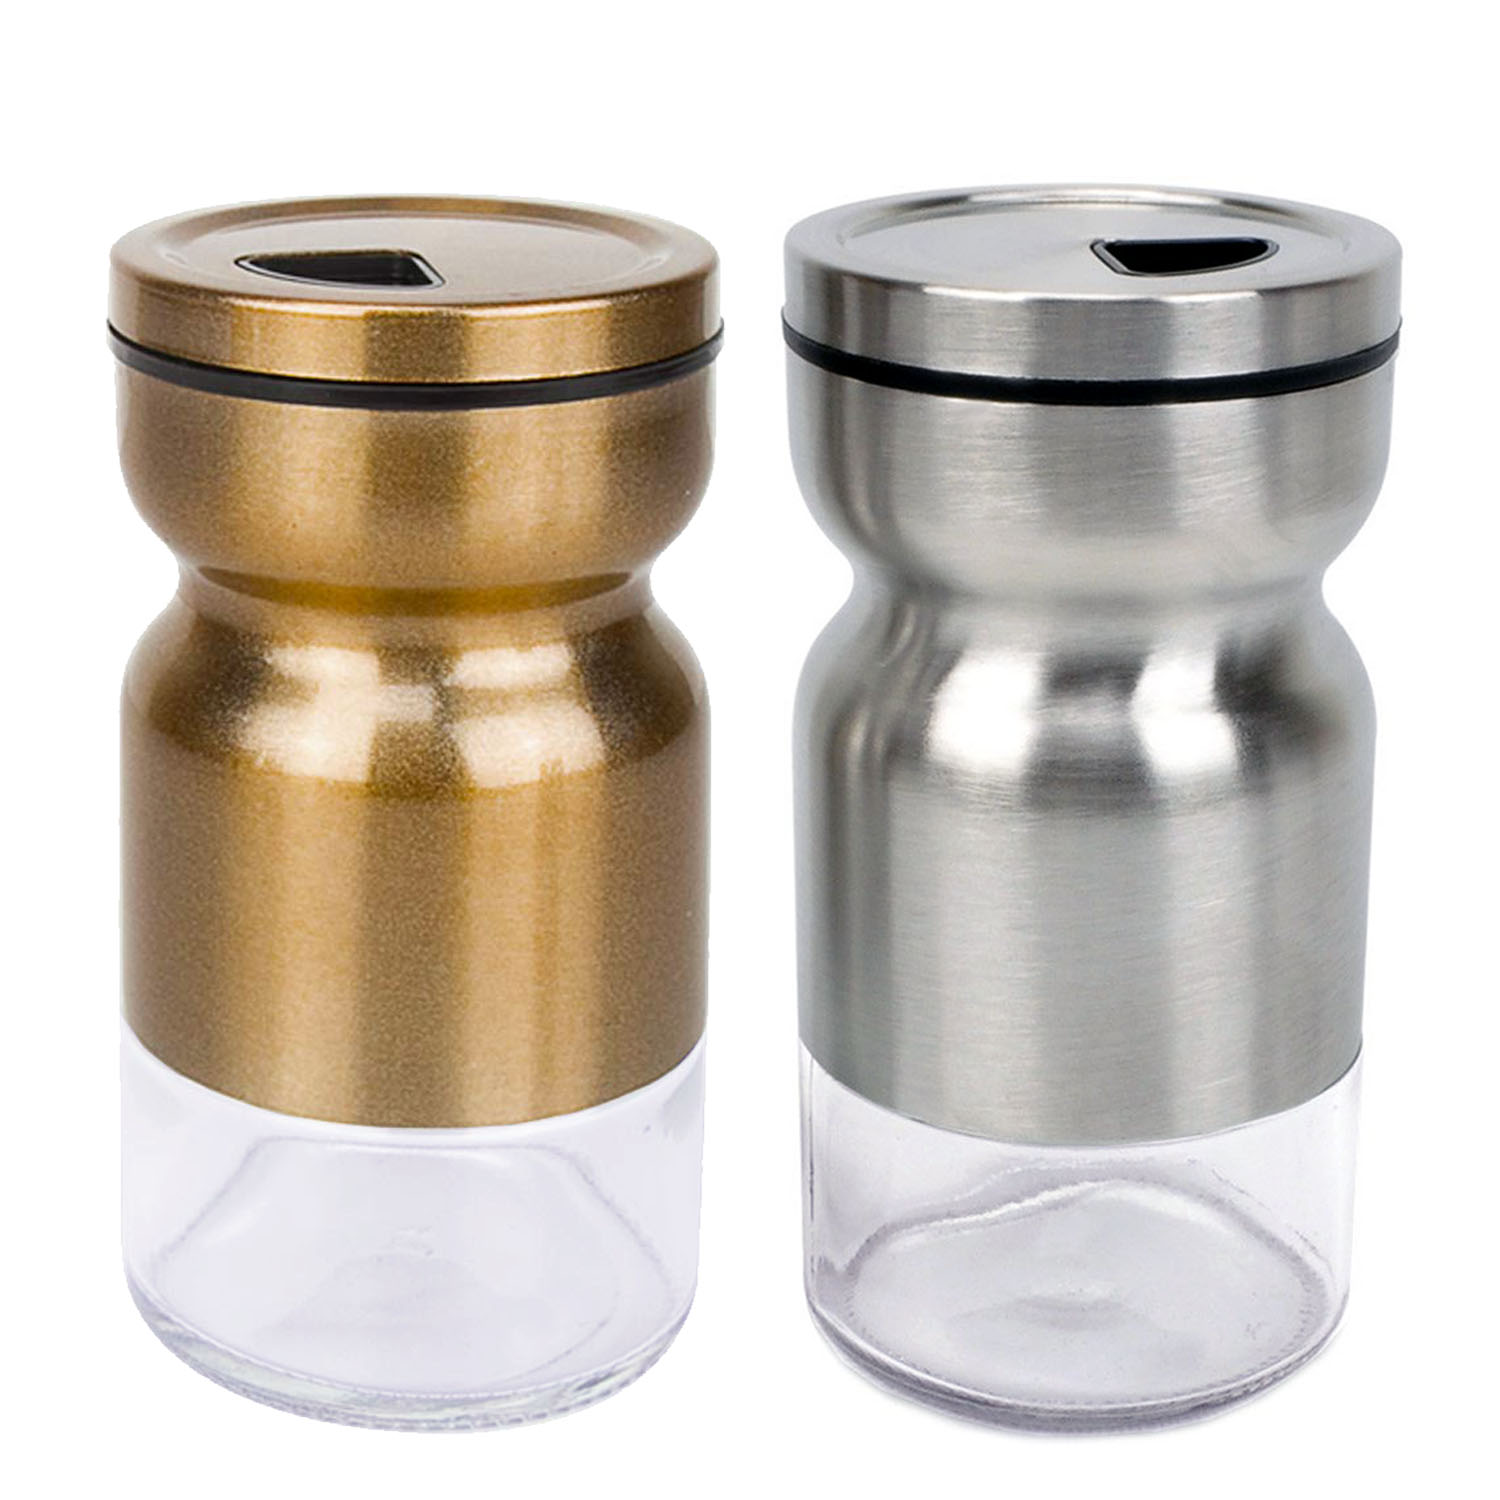 Salt & Pepper Shakers Stainless Steel Cover Glass Bottom With Rotating Cover - Spice Sugar Shakers